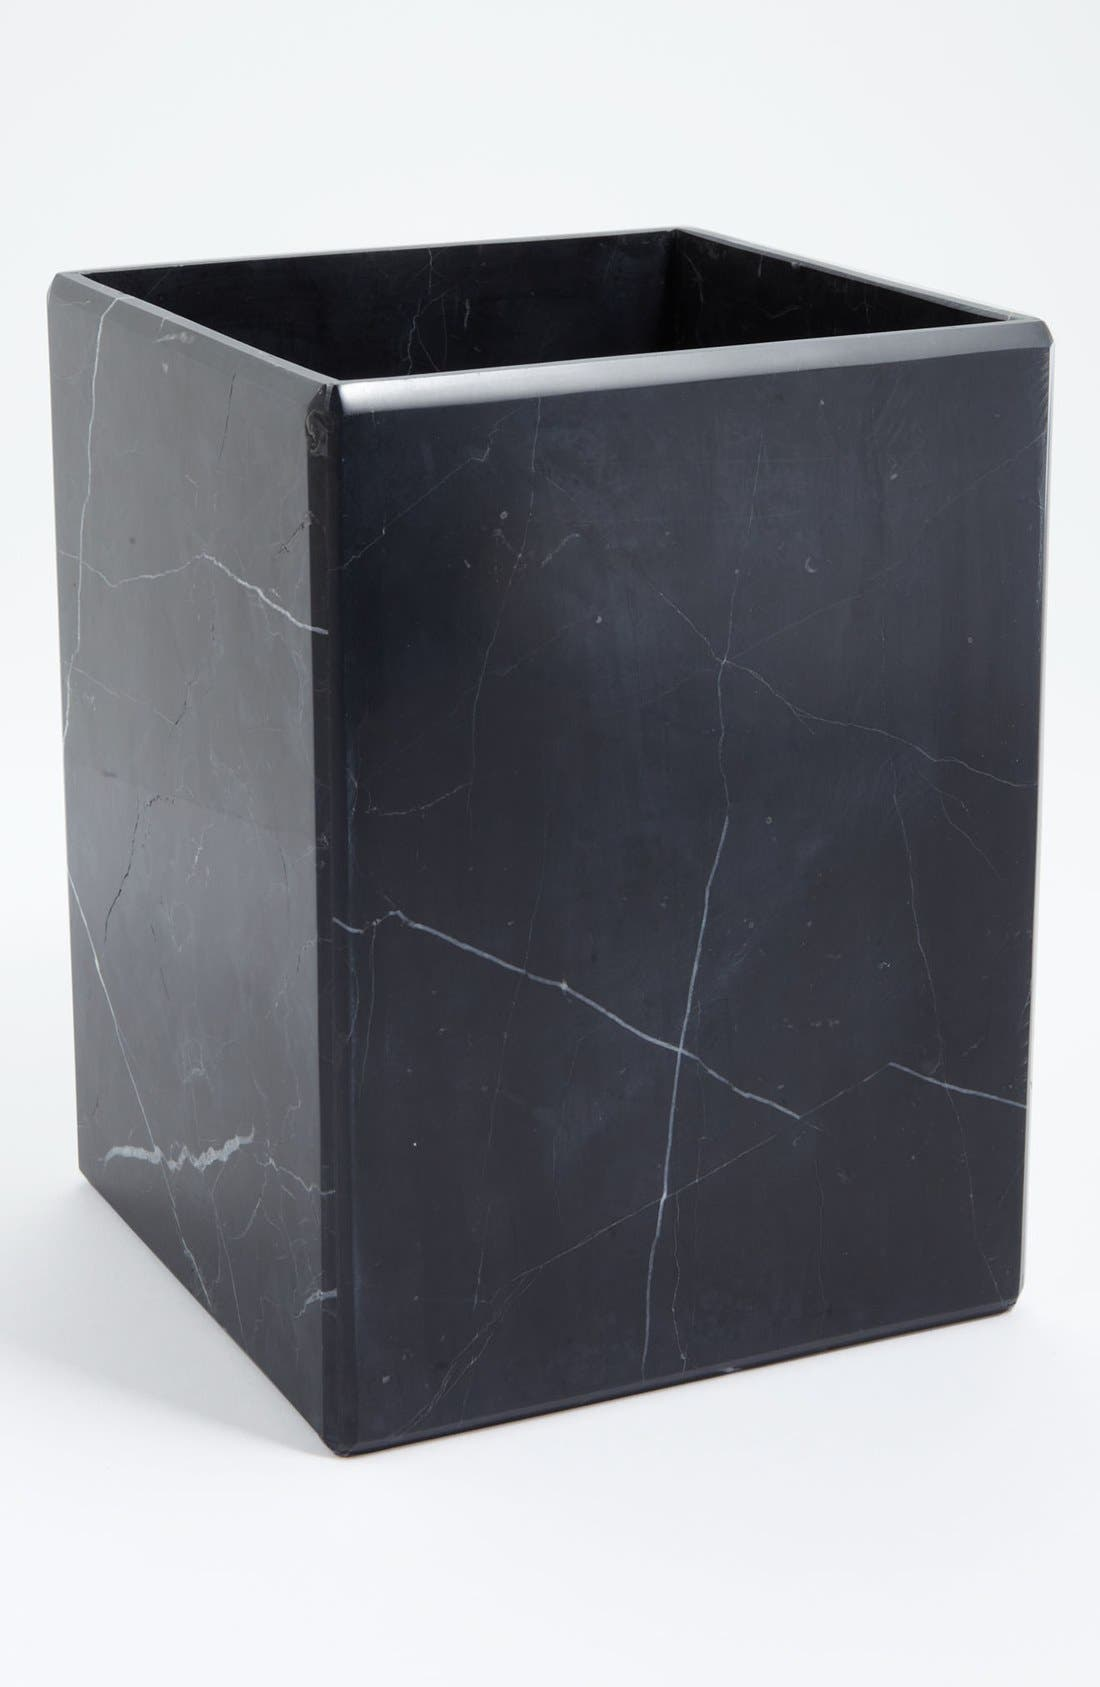 Alternate Image 1 Selected - Waterworks Studio 'Luna' Black Marble Wastebasket (Online Only)